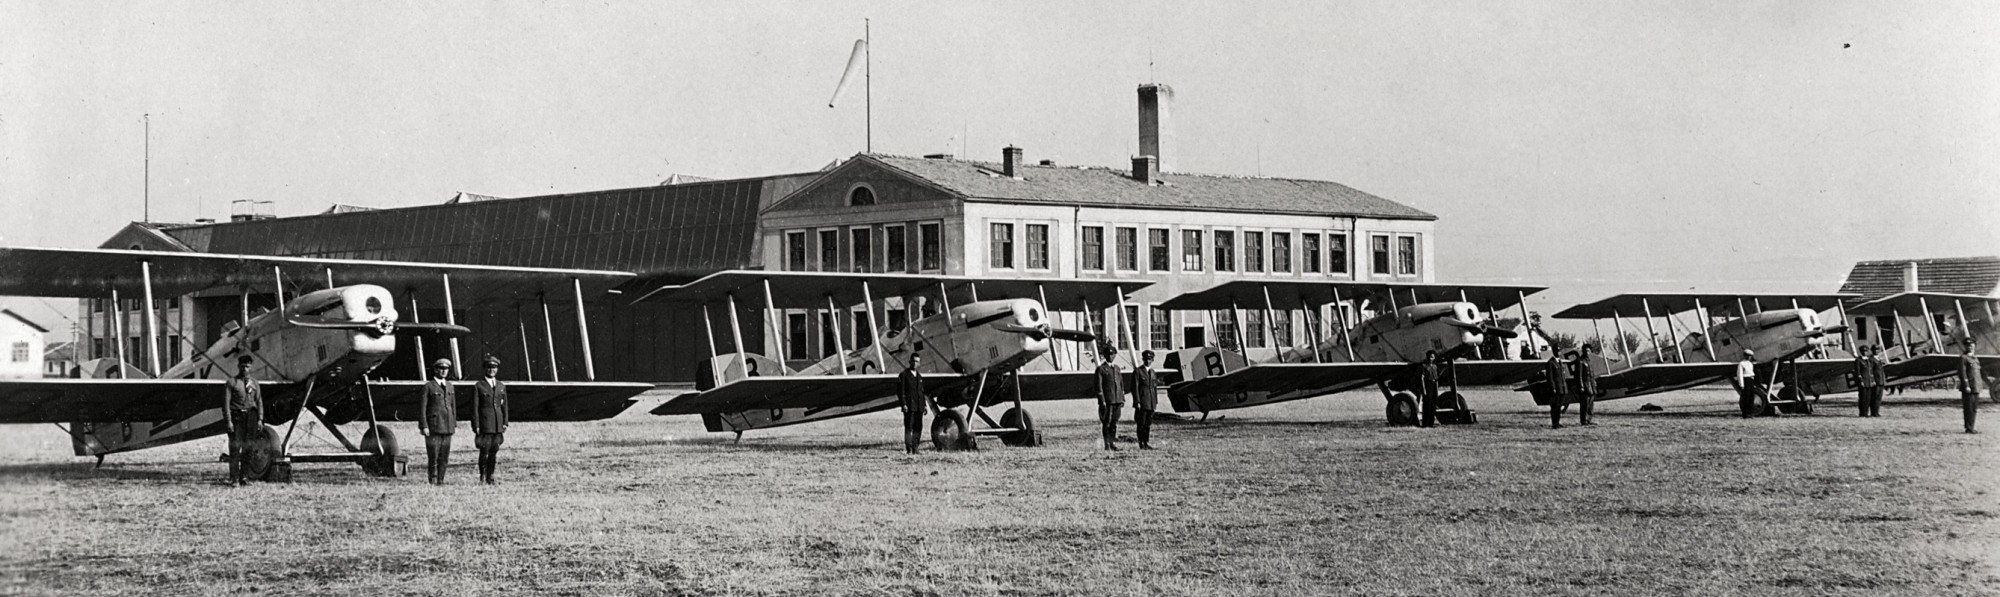 Potez XVII in Bulgaria, 1928